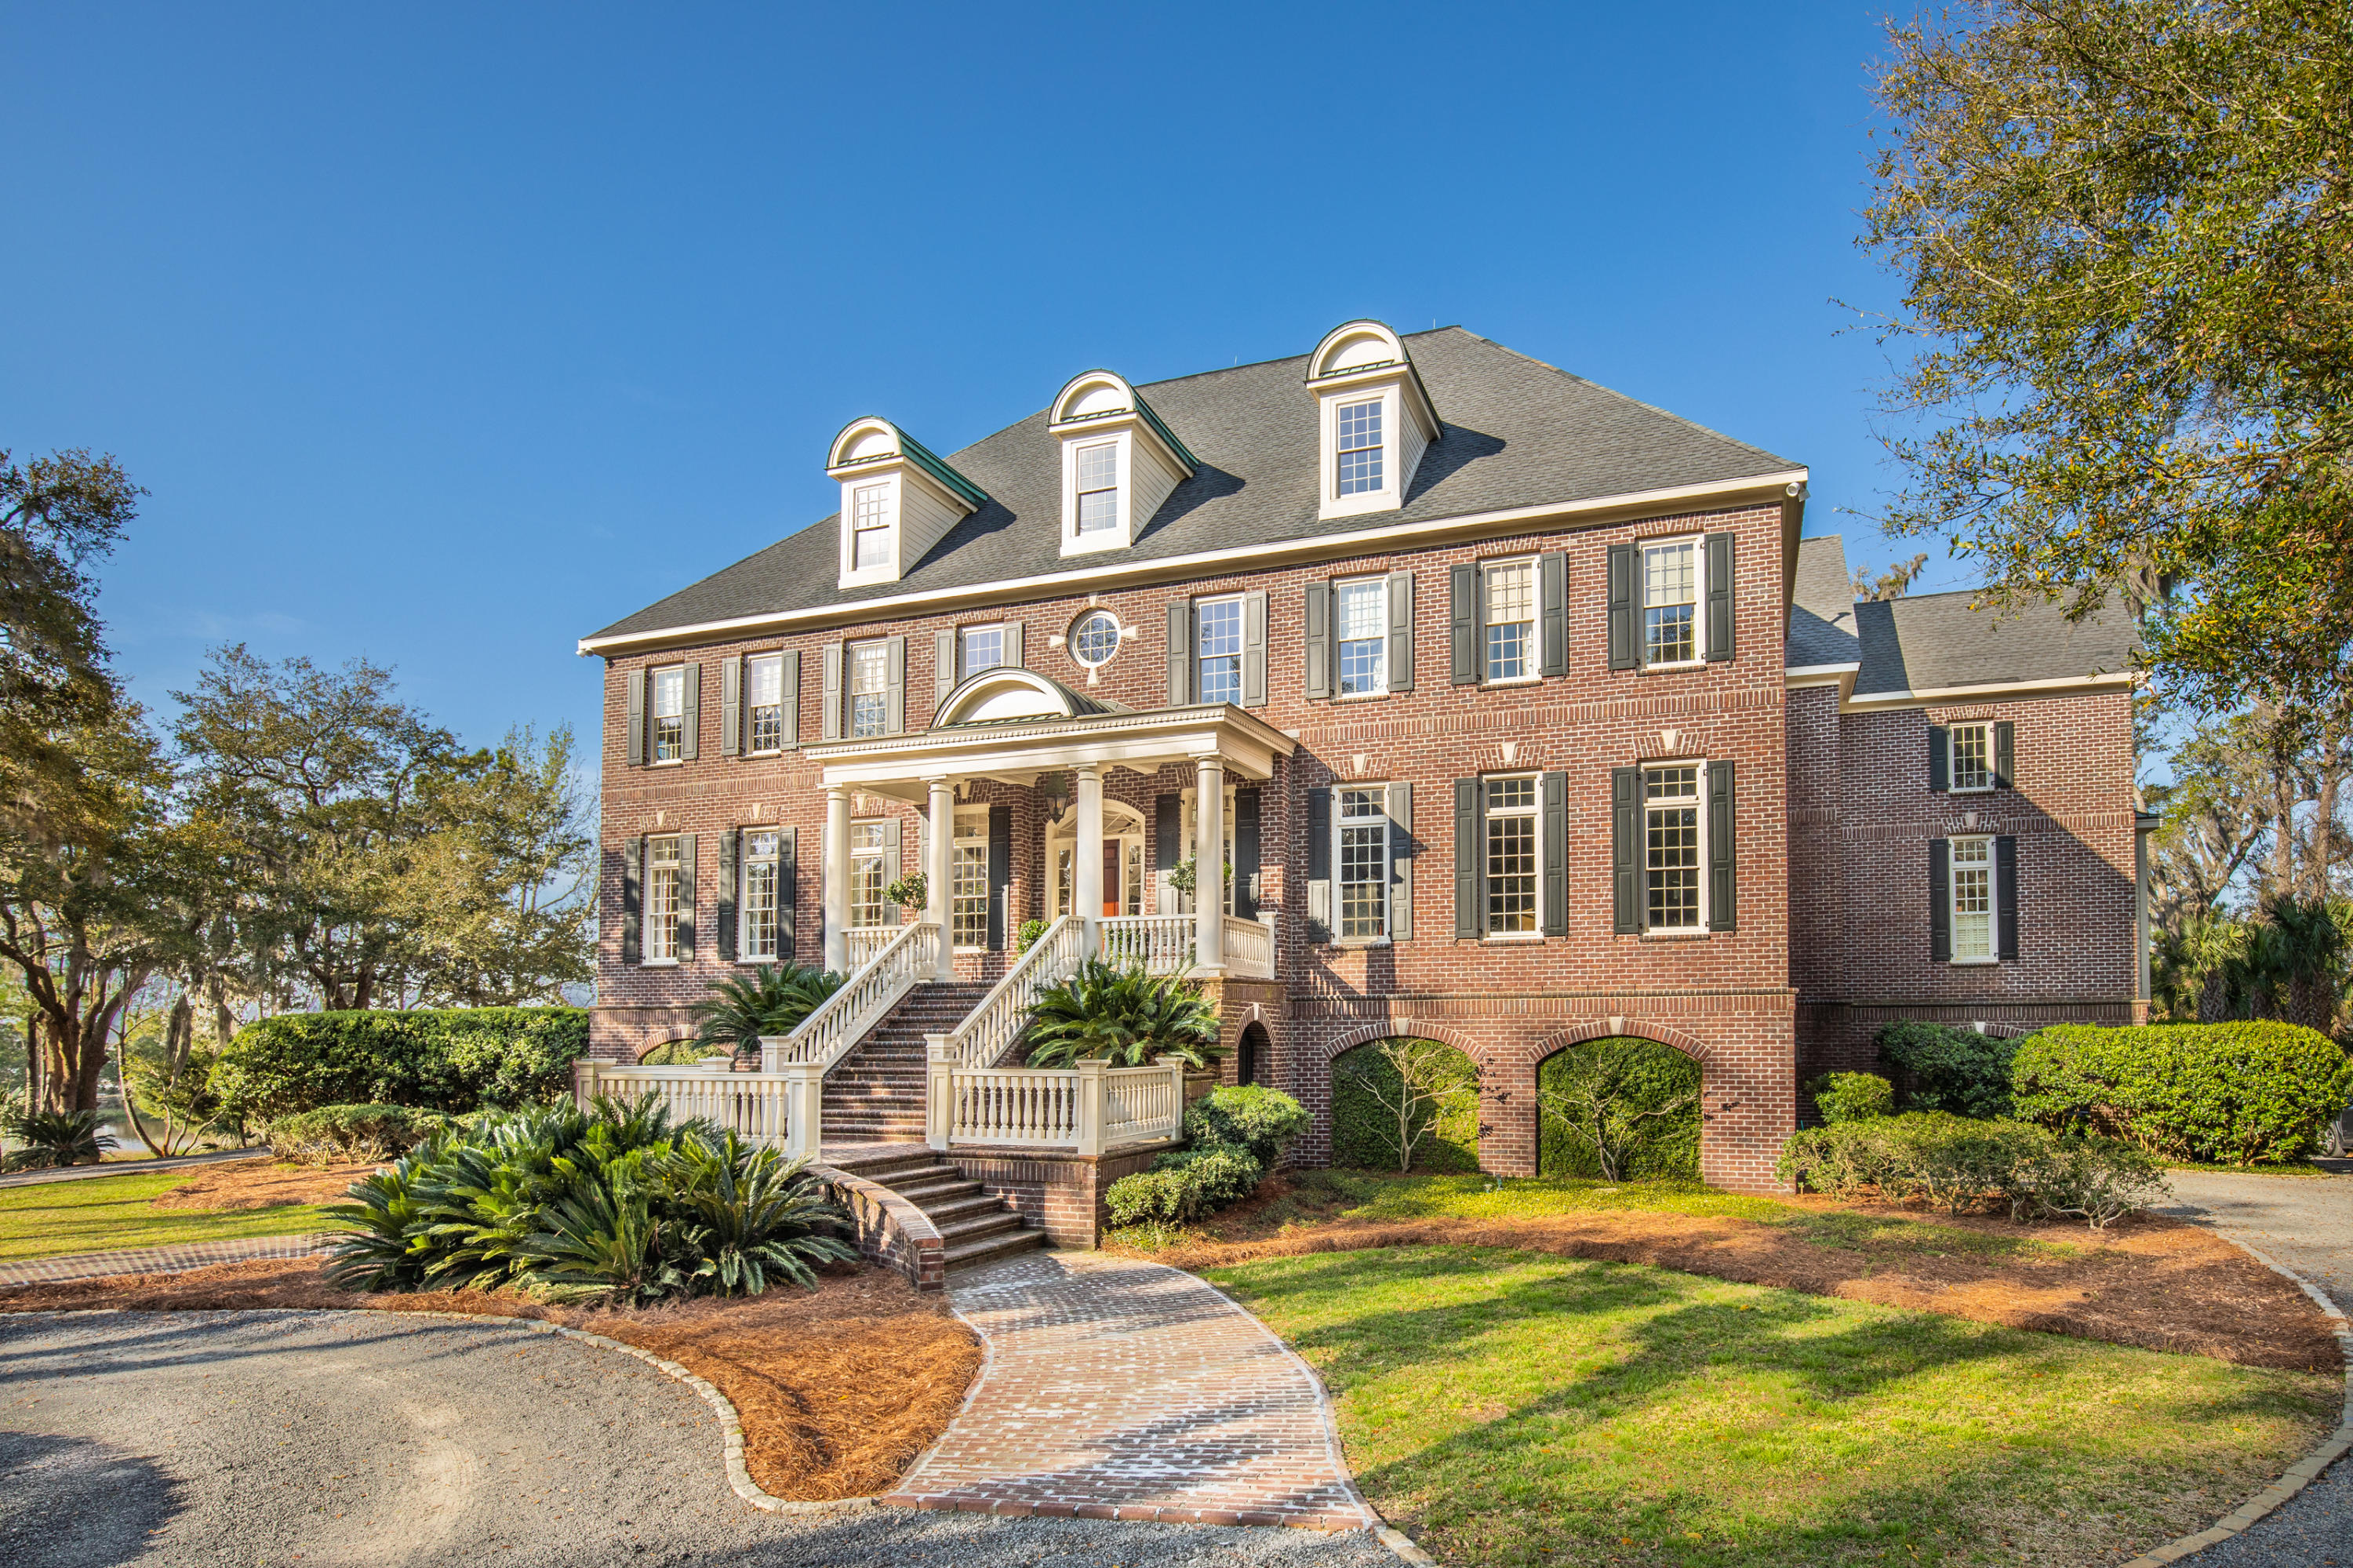 Ravens Bluff Homes For Sale - 5150 Chisolm, Johns Island, SC - 63